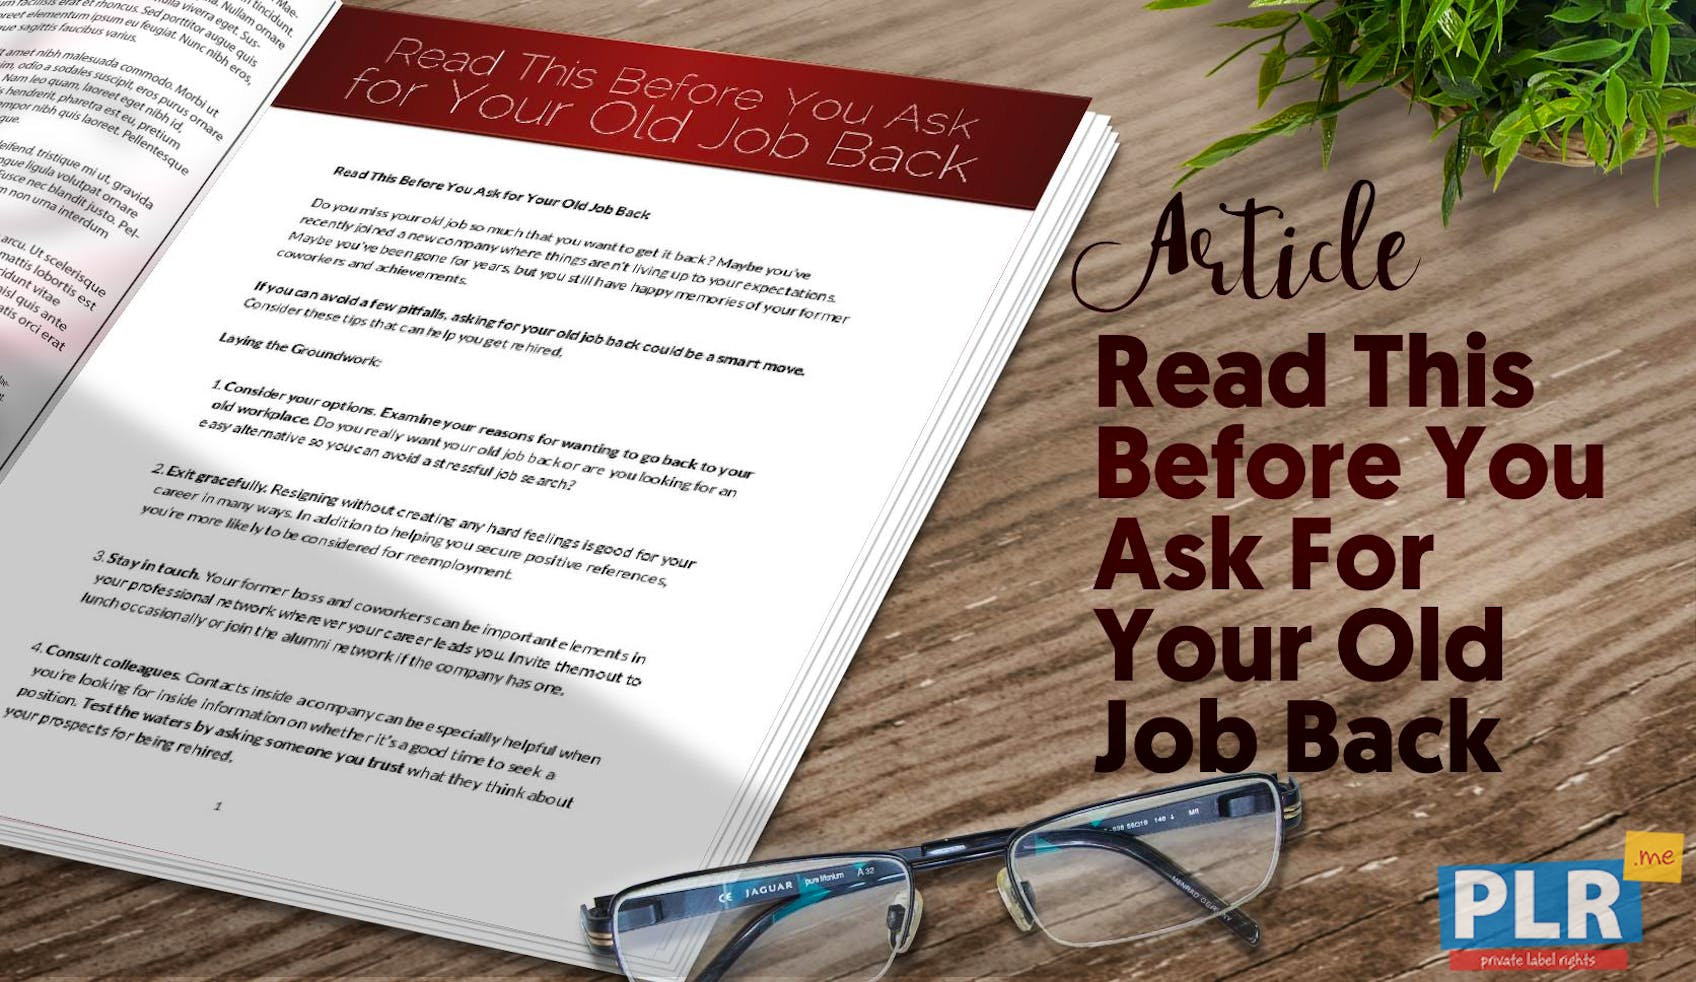 Read This Before You Ask For Your Old Job Back